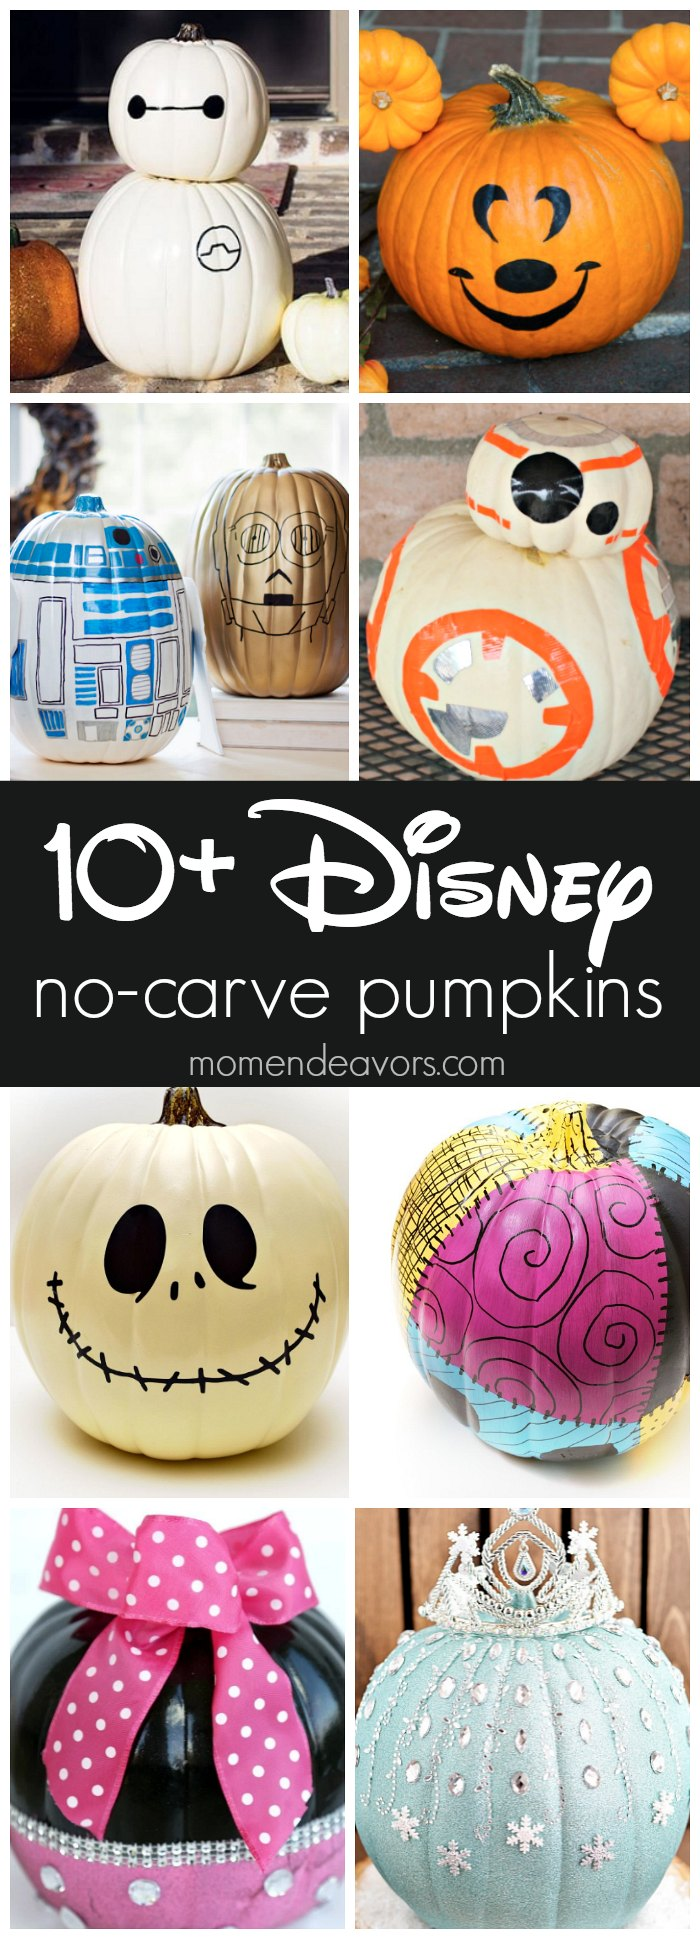 10-disney-no-carve-pumpkins